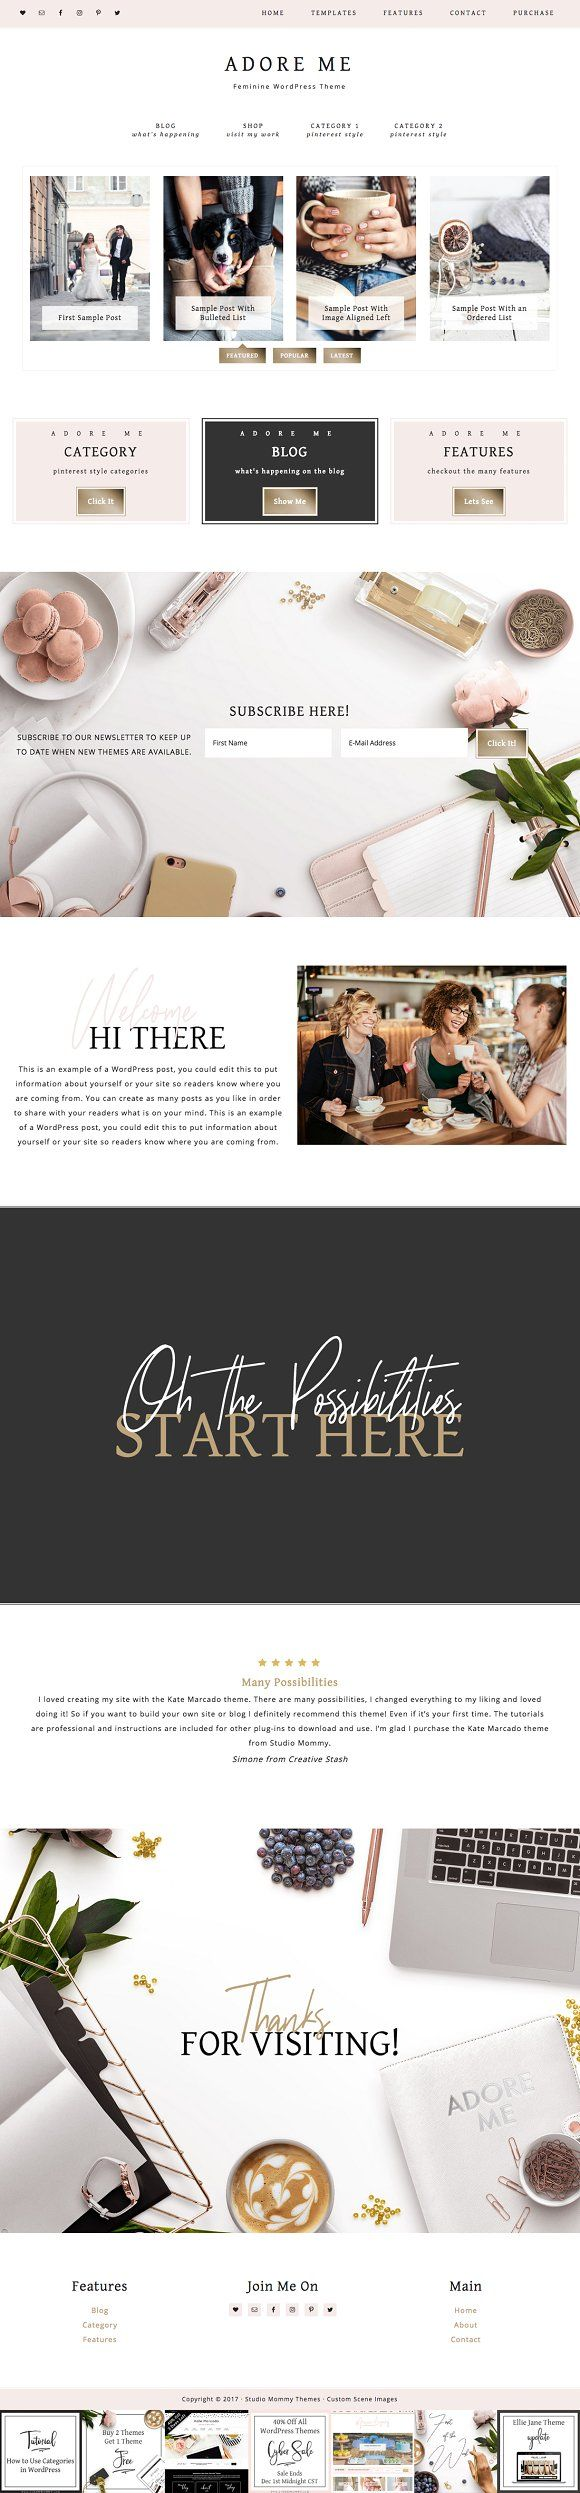 Adore Me WordPress Theme by Studio Mommy on Creative Market